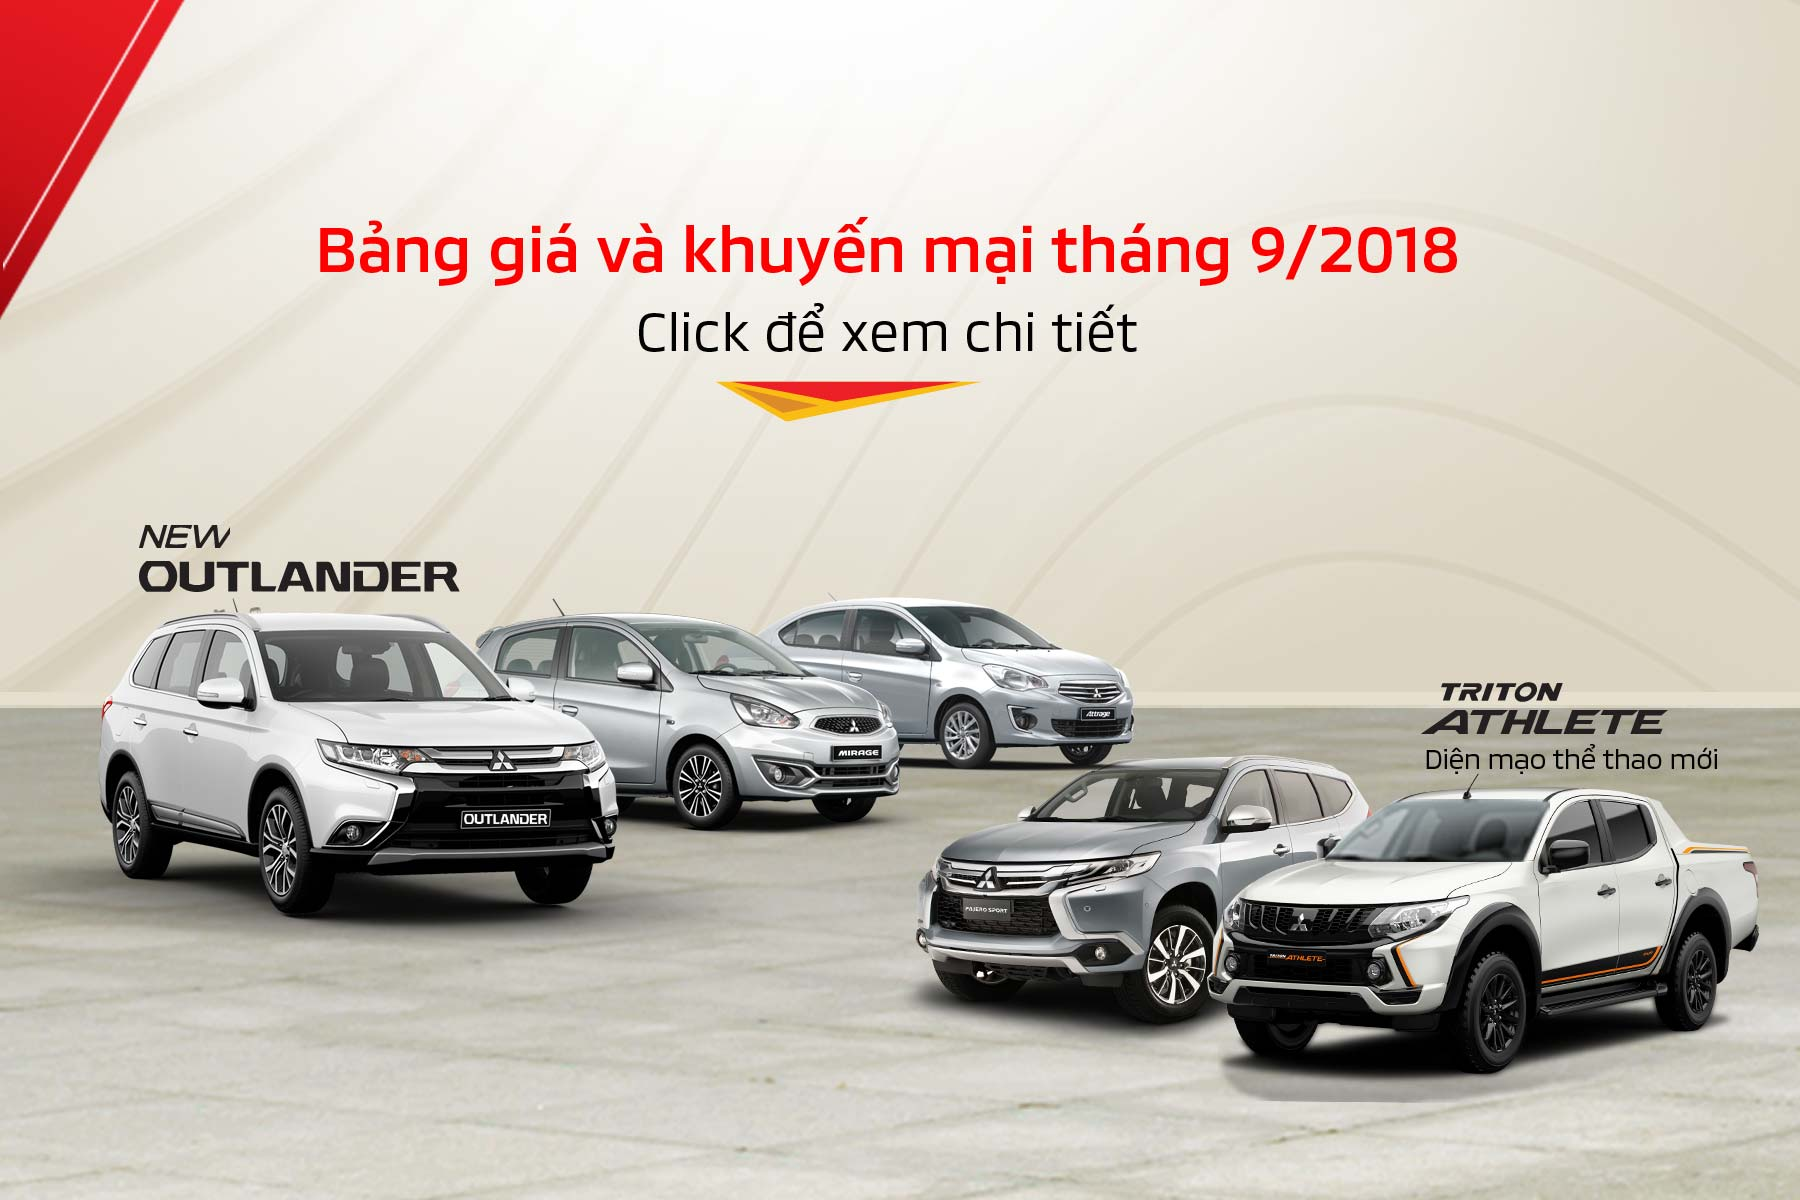 Price & promotion of Mitsubishi cars in Aug 2018